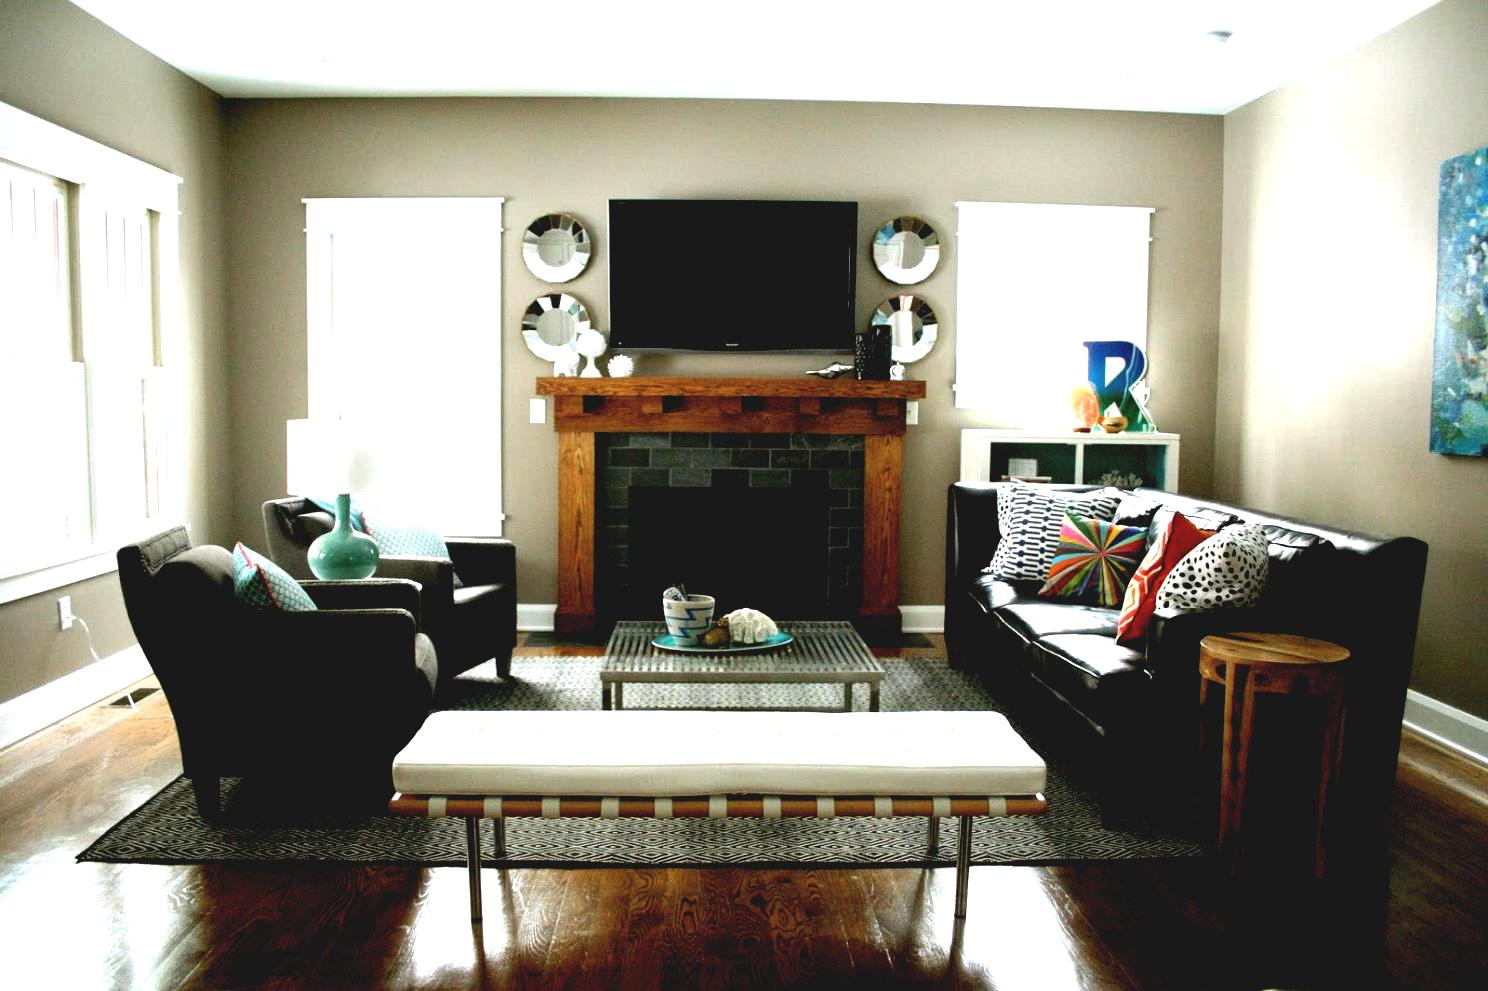 Create Room Borders. bench borders - 24 Gorgeous Living Room Ideas To Inspire A Makeover